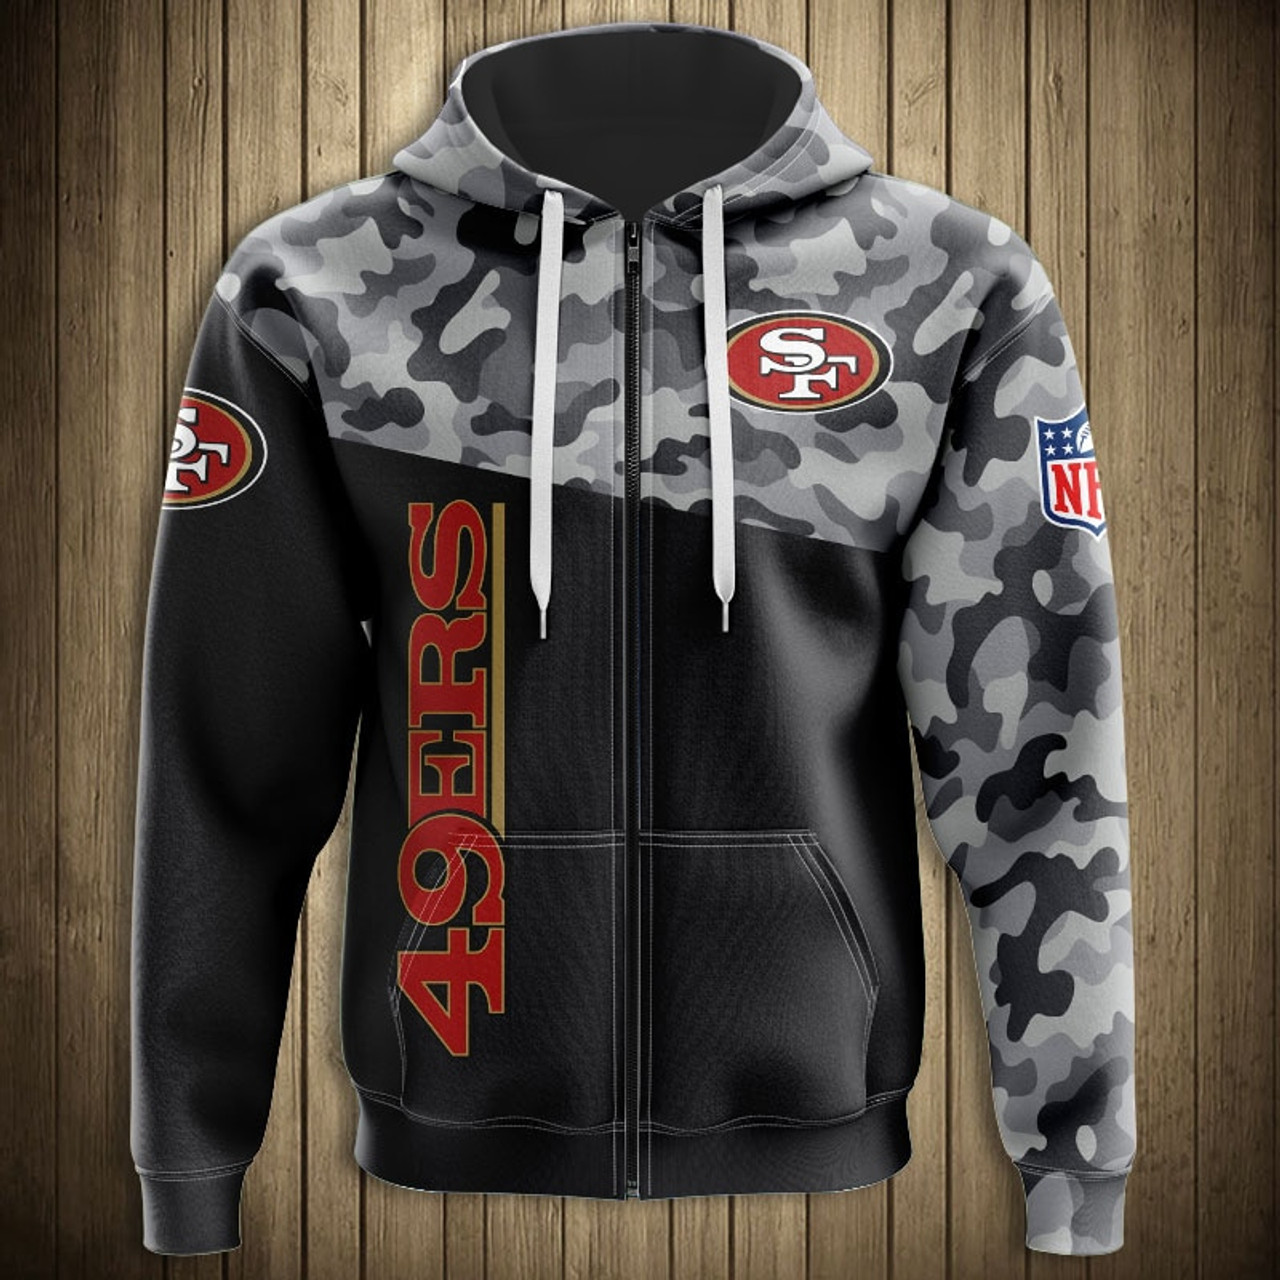 *(OFFICIAL-N.F.L.SAN-FRANCISCO-49ERS-CAMO.DESIGN-ZIPPERED-HOODIES/3D-CUSTOM-49ERS-LOGOS & OFFICIAL-49ERS-TEAM-COLORS/NICE-3D-DETAILED-GRAPHIC-PRINTED-DOUBLE-SIDED/ALL-OVER-ENTIRE-HOODIE-PRINTED-DESIGN/WARM-PREMIUM-N.F.L.49ERS-ZIPPERED-TEAM-HOODIES)*